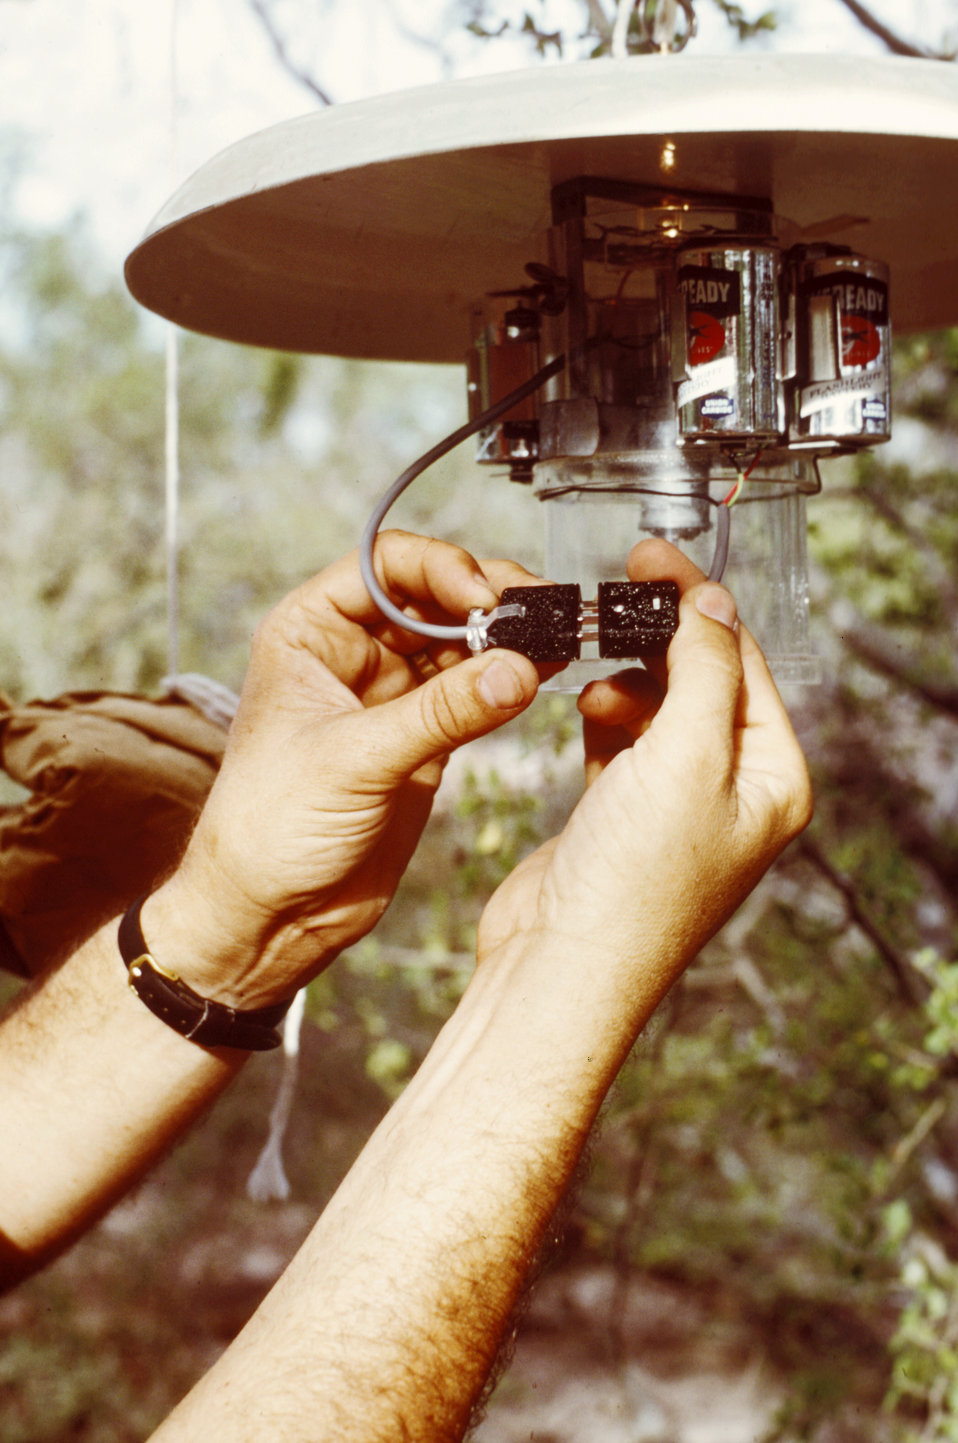 This technician is setting up a CDC light trap in order to collect mosquitoes in the field.